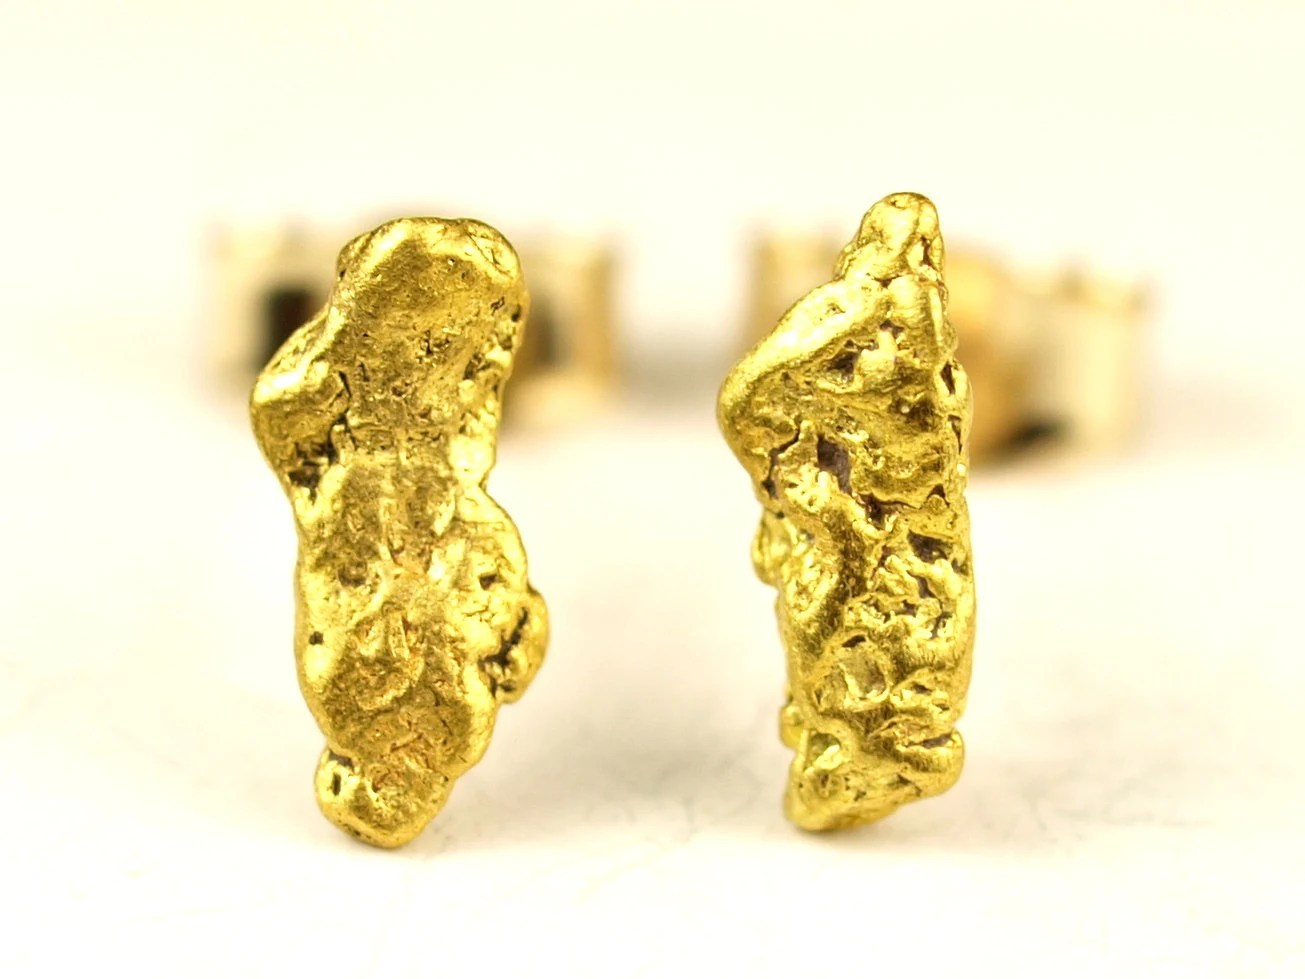 Natural Gold Nugget Stud Earrings with 14k posts and backs